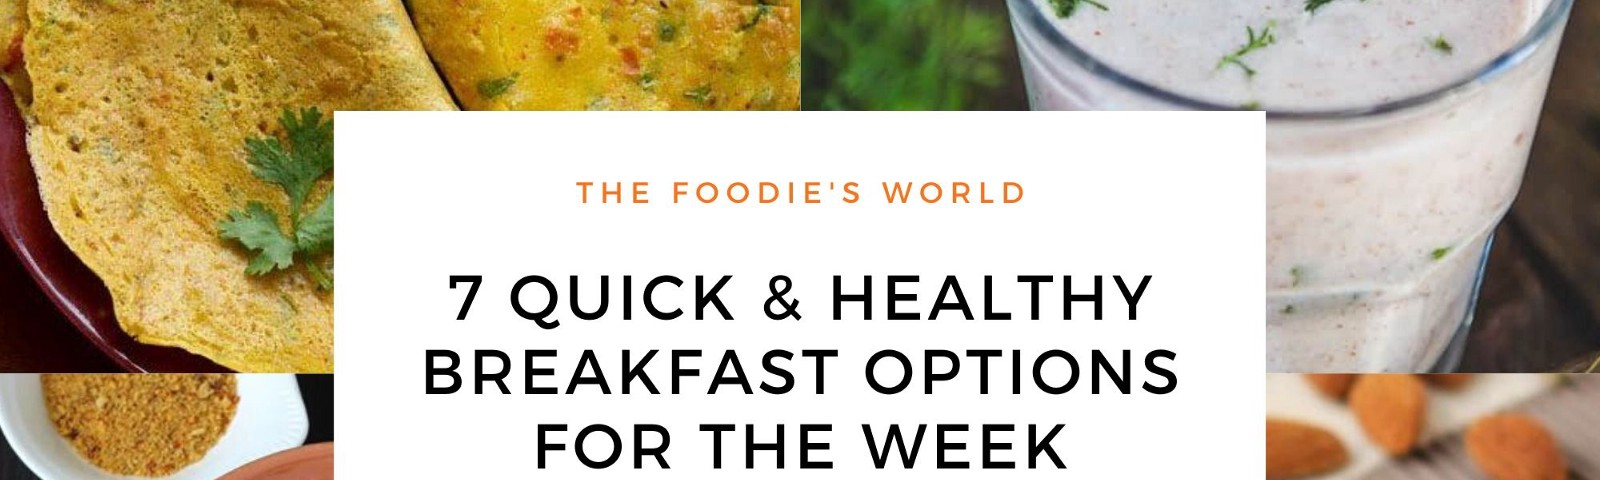 7 Quick & Healthy Breakfast Options for the Week